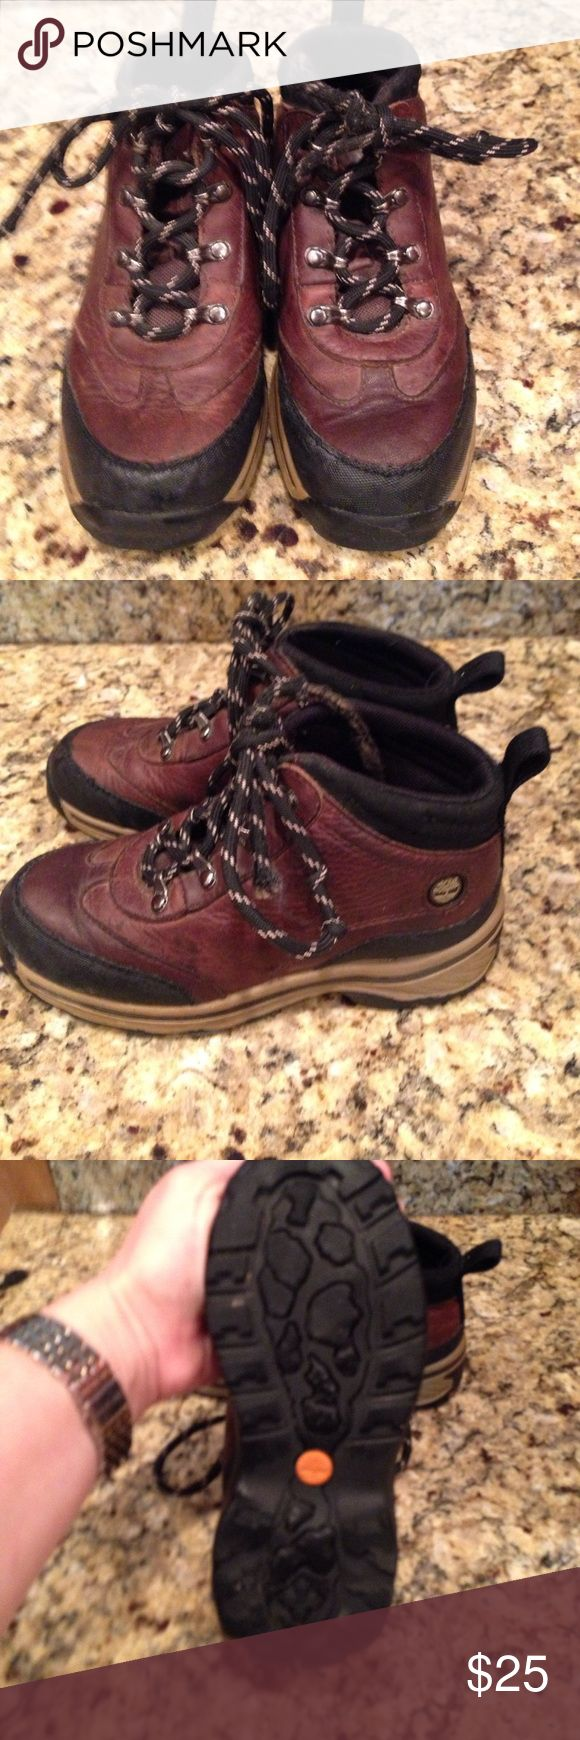 Boys Timberland Boots These shoes are in perfect condition except laces. My son liked to pull the plastic part off the ends so will need new laces. Otherwise these boots were only worn twice. Timberland Shoes Boots